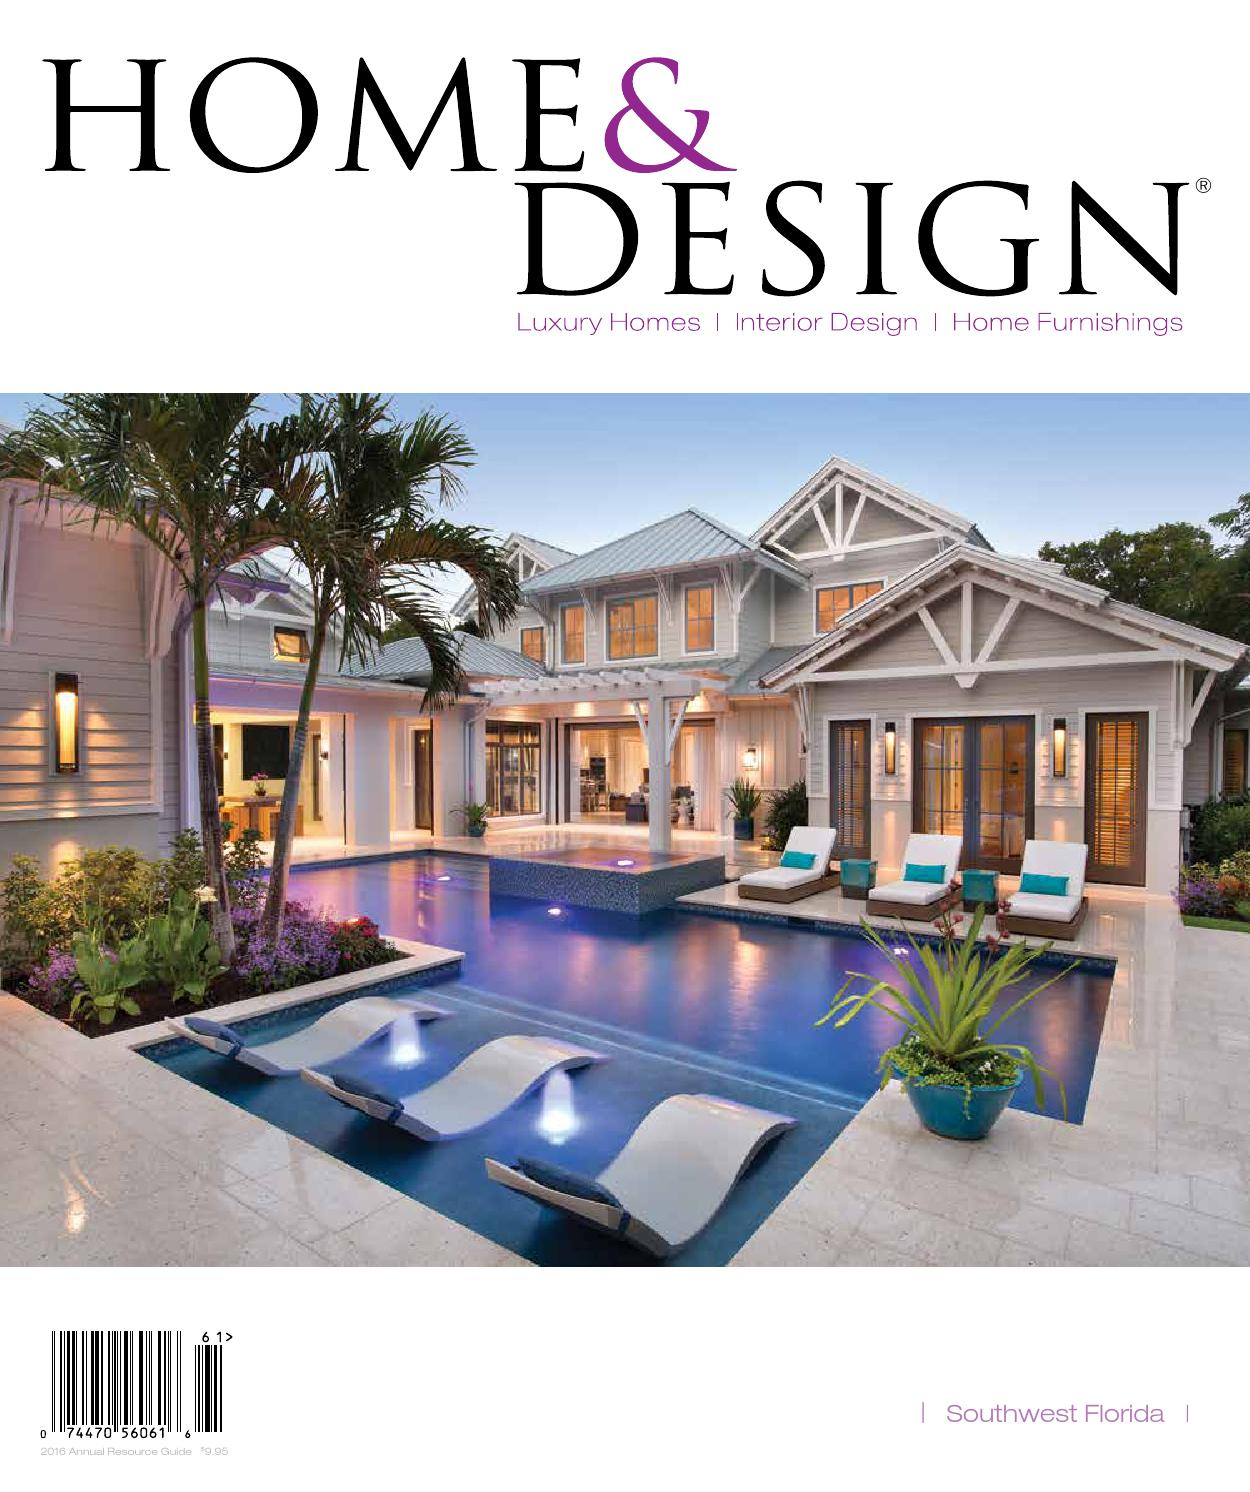 Luxury Homes In Florida: Annual Resource Guide 2016